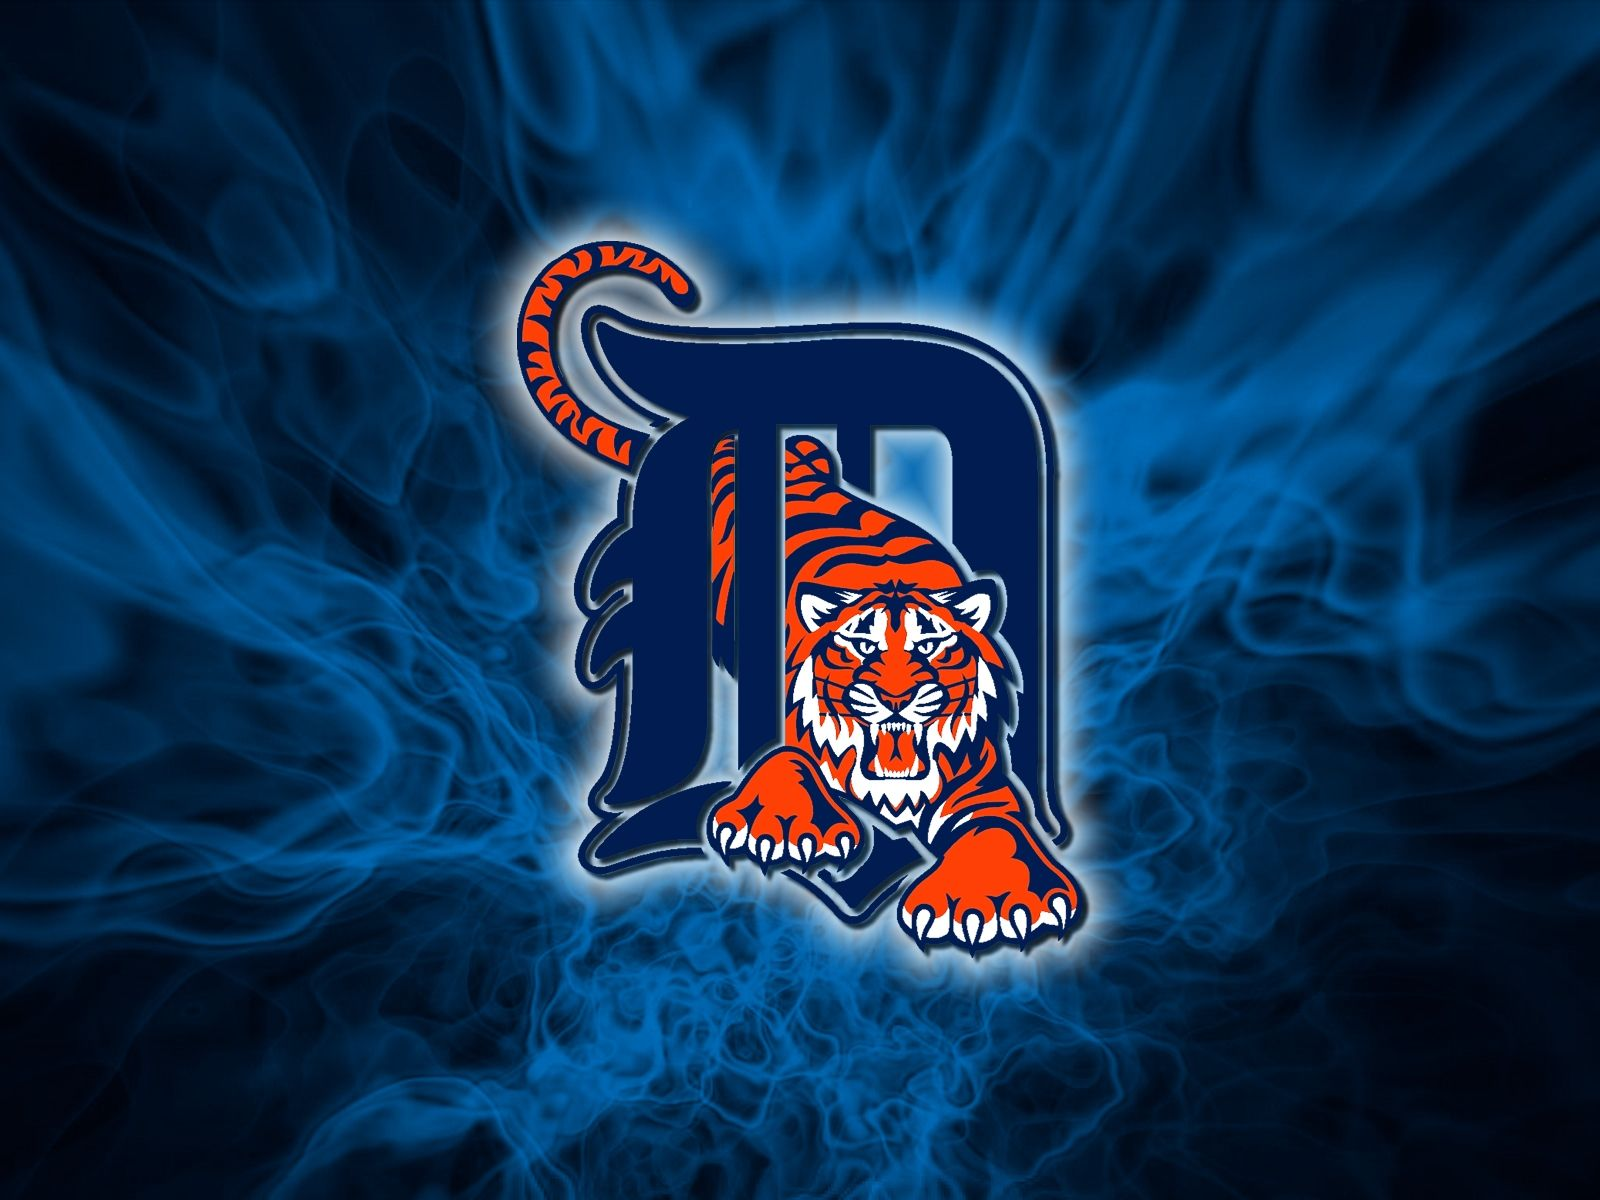 This Detroit Tiger's logo is sick! GoTigers JJInc